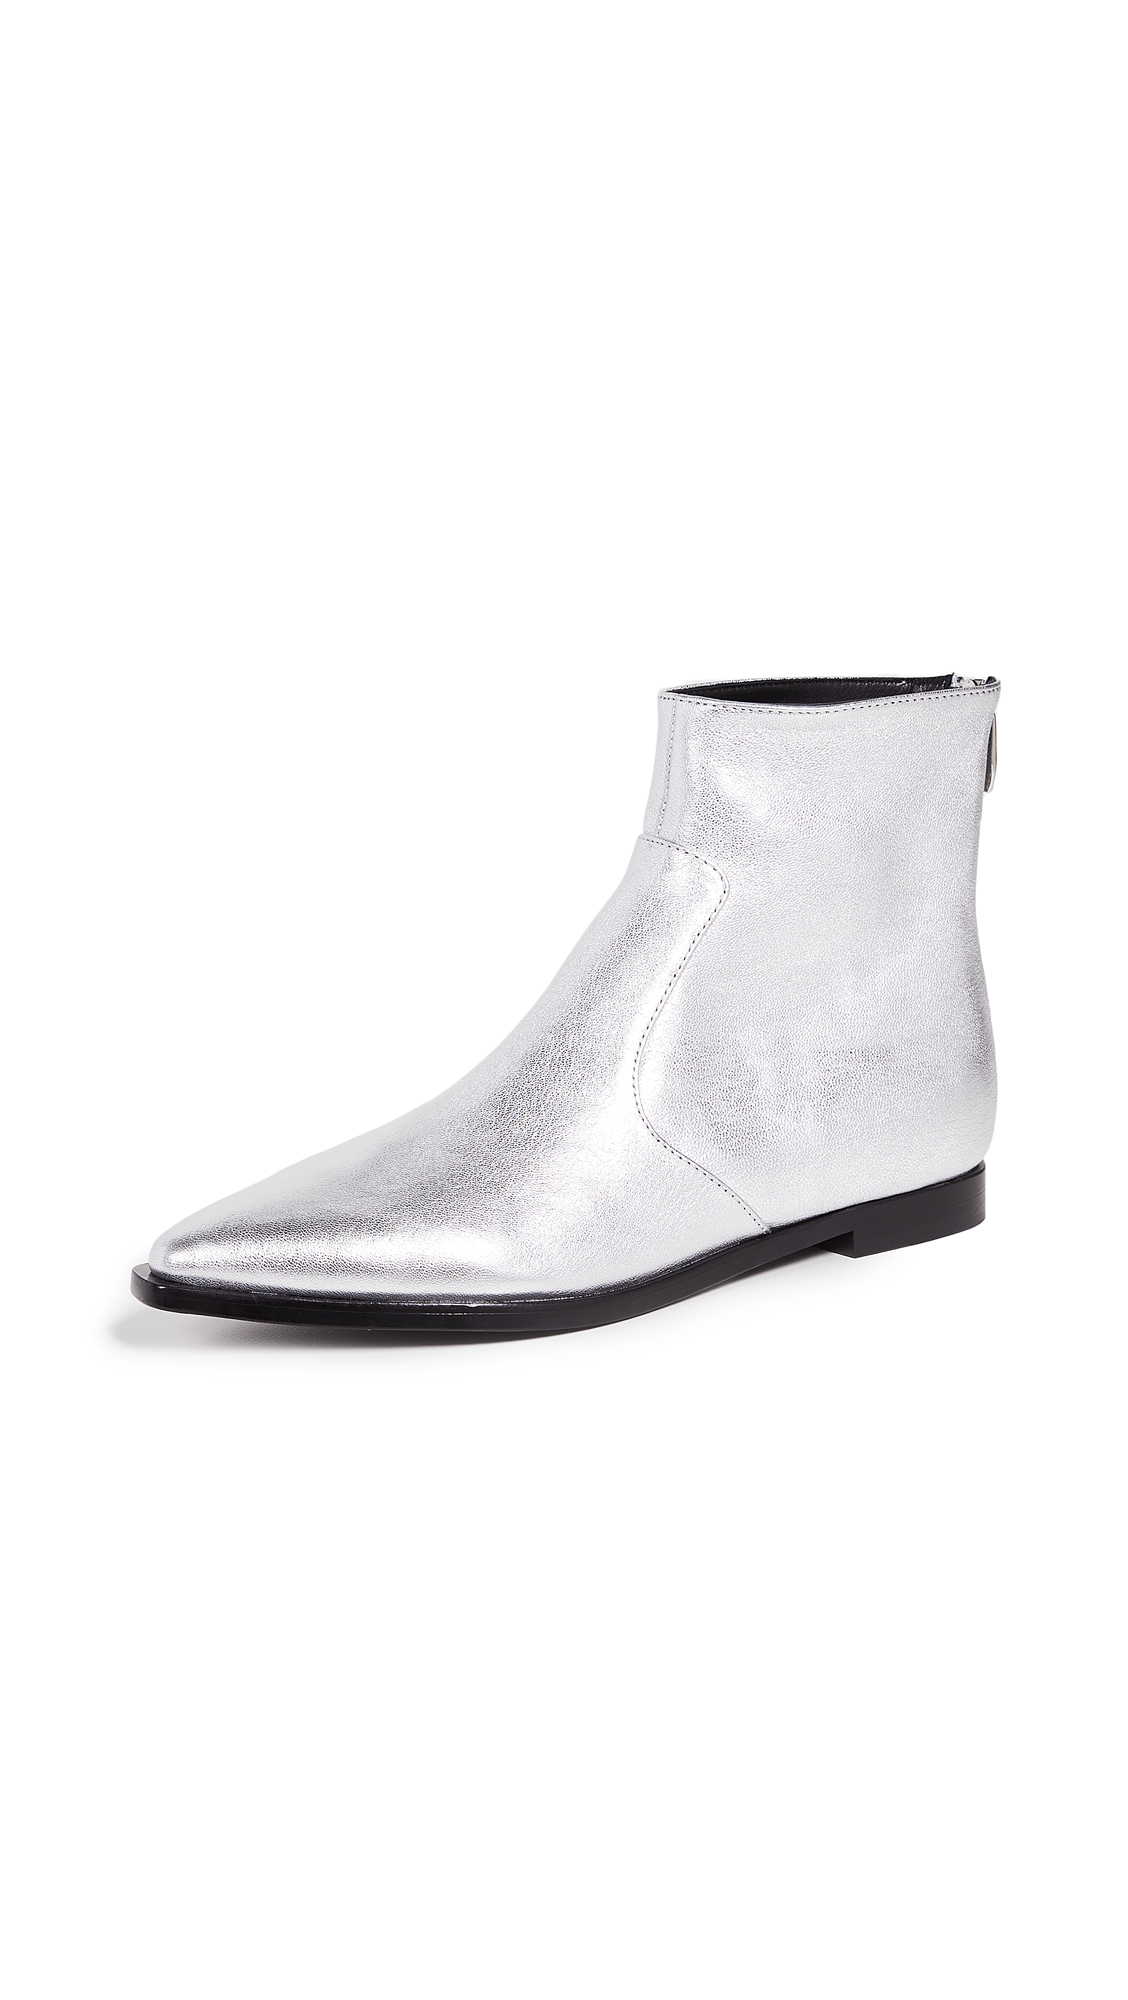 Sigerson Morrison Eranthe Point Toe Booties - Silver